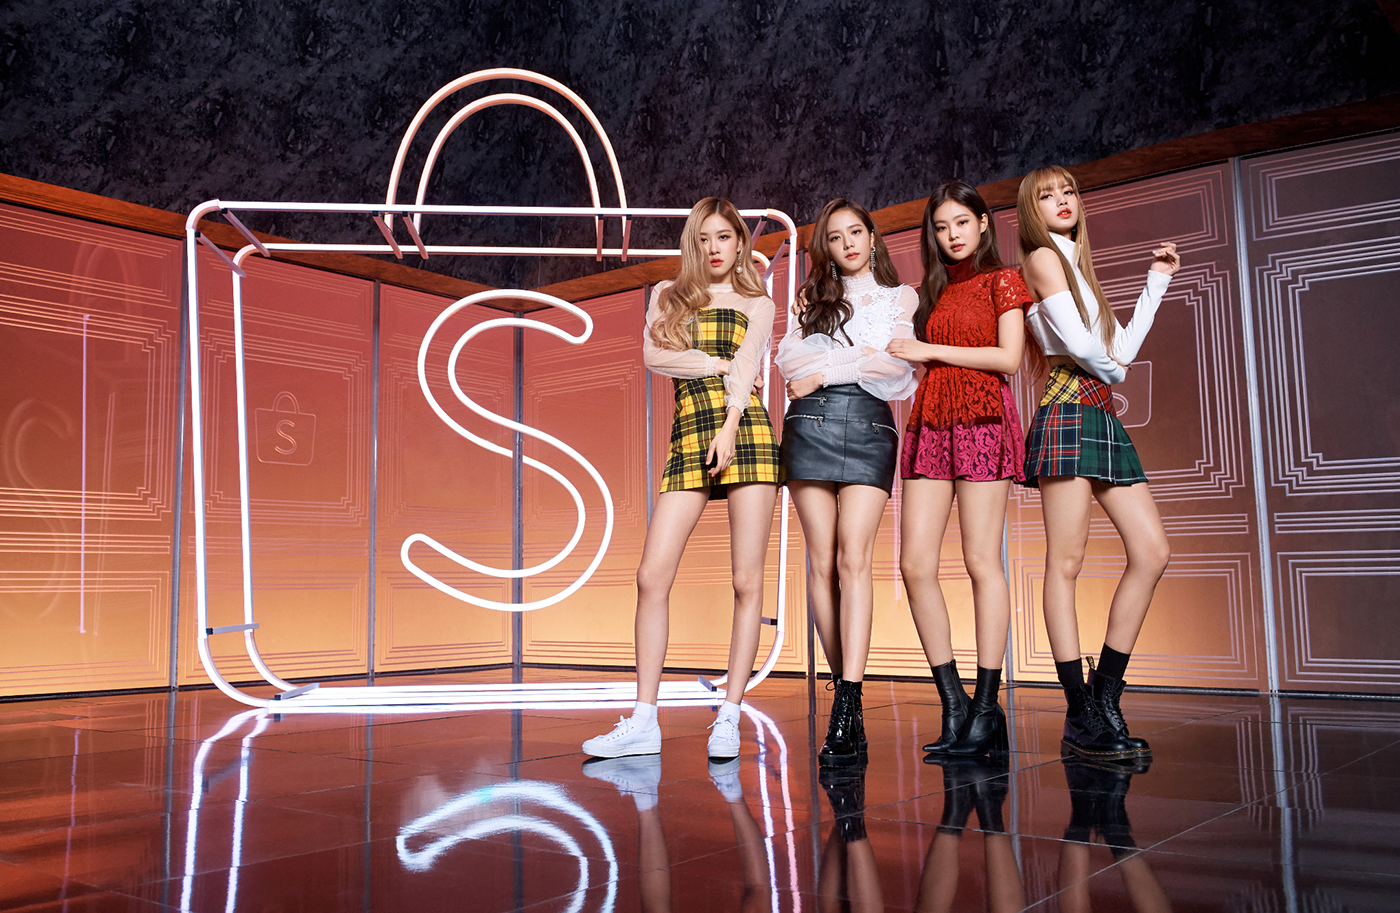 BLACKPINK collaborates with Shopee in a CF commercial.